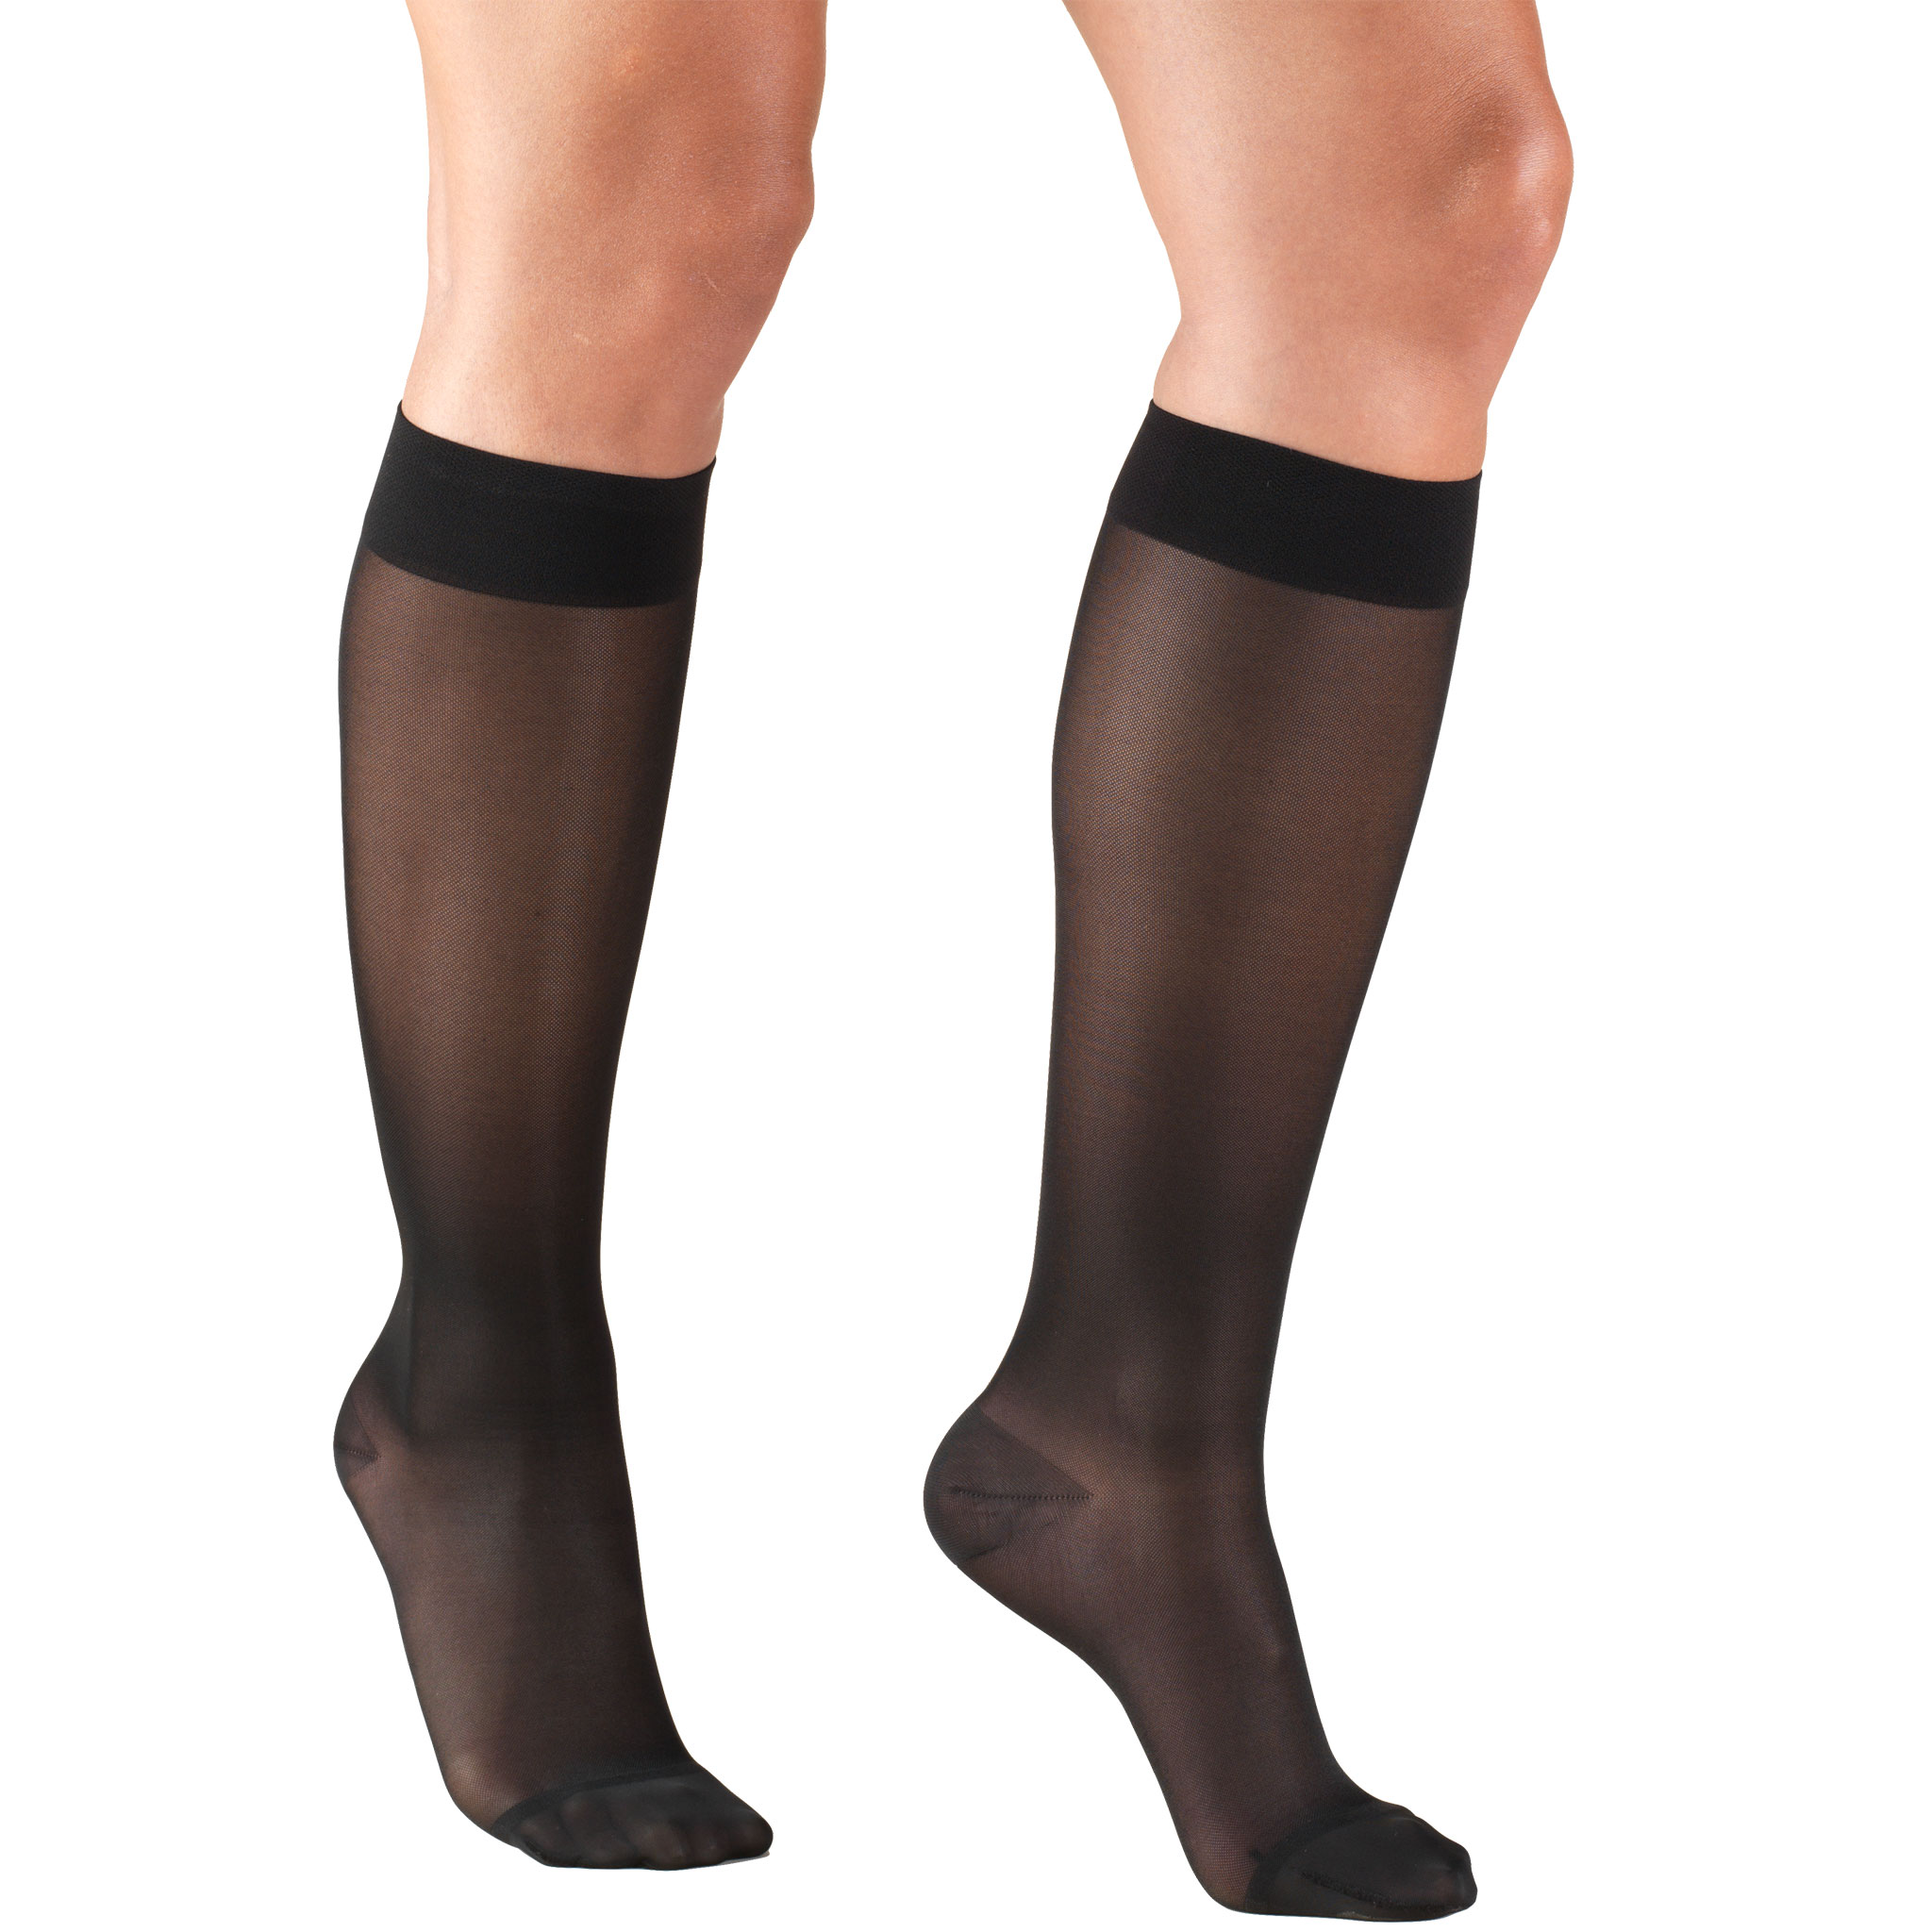 Women's Stockings, Knee High, Sheer: 15-20 mmHg, Beige, Medium